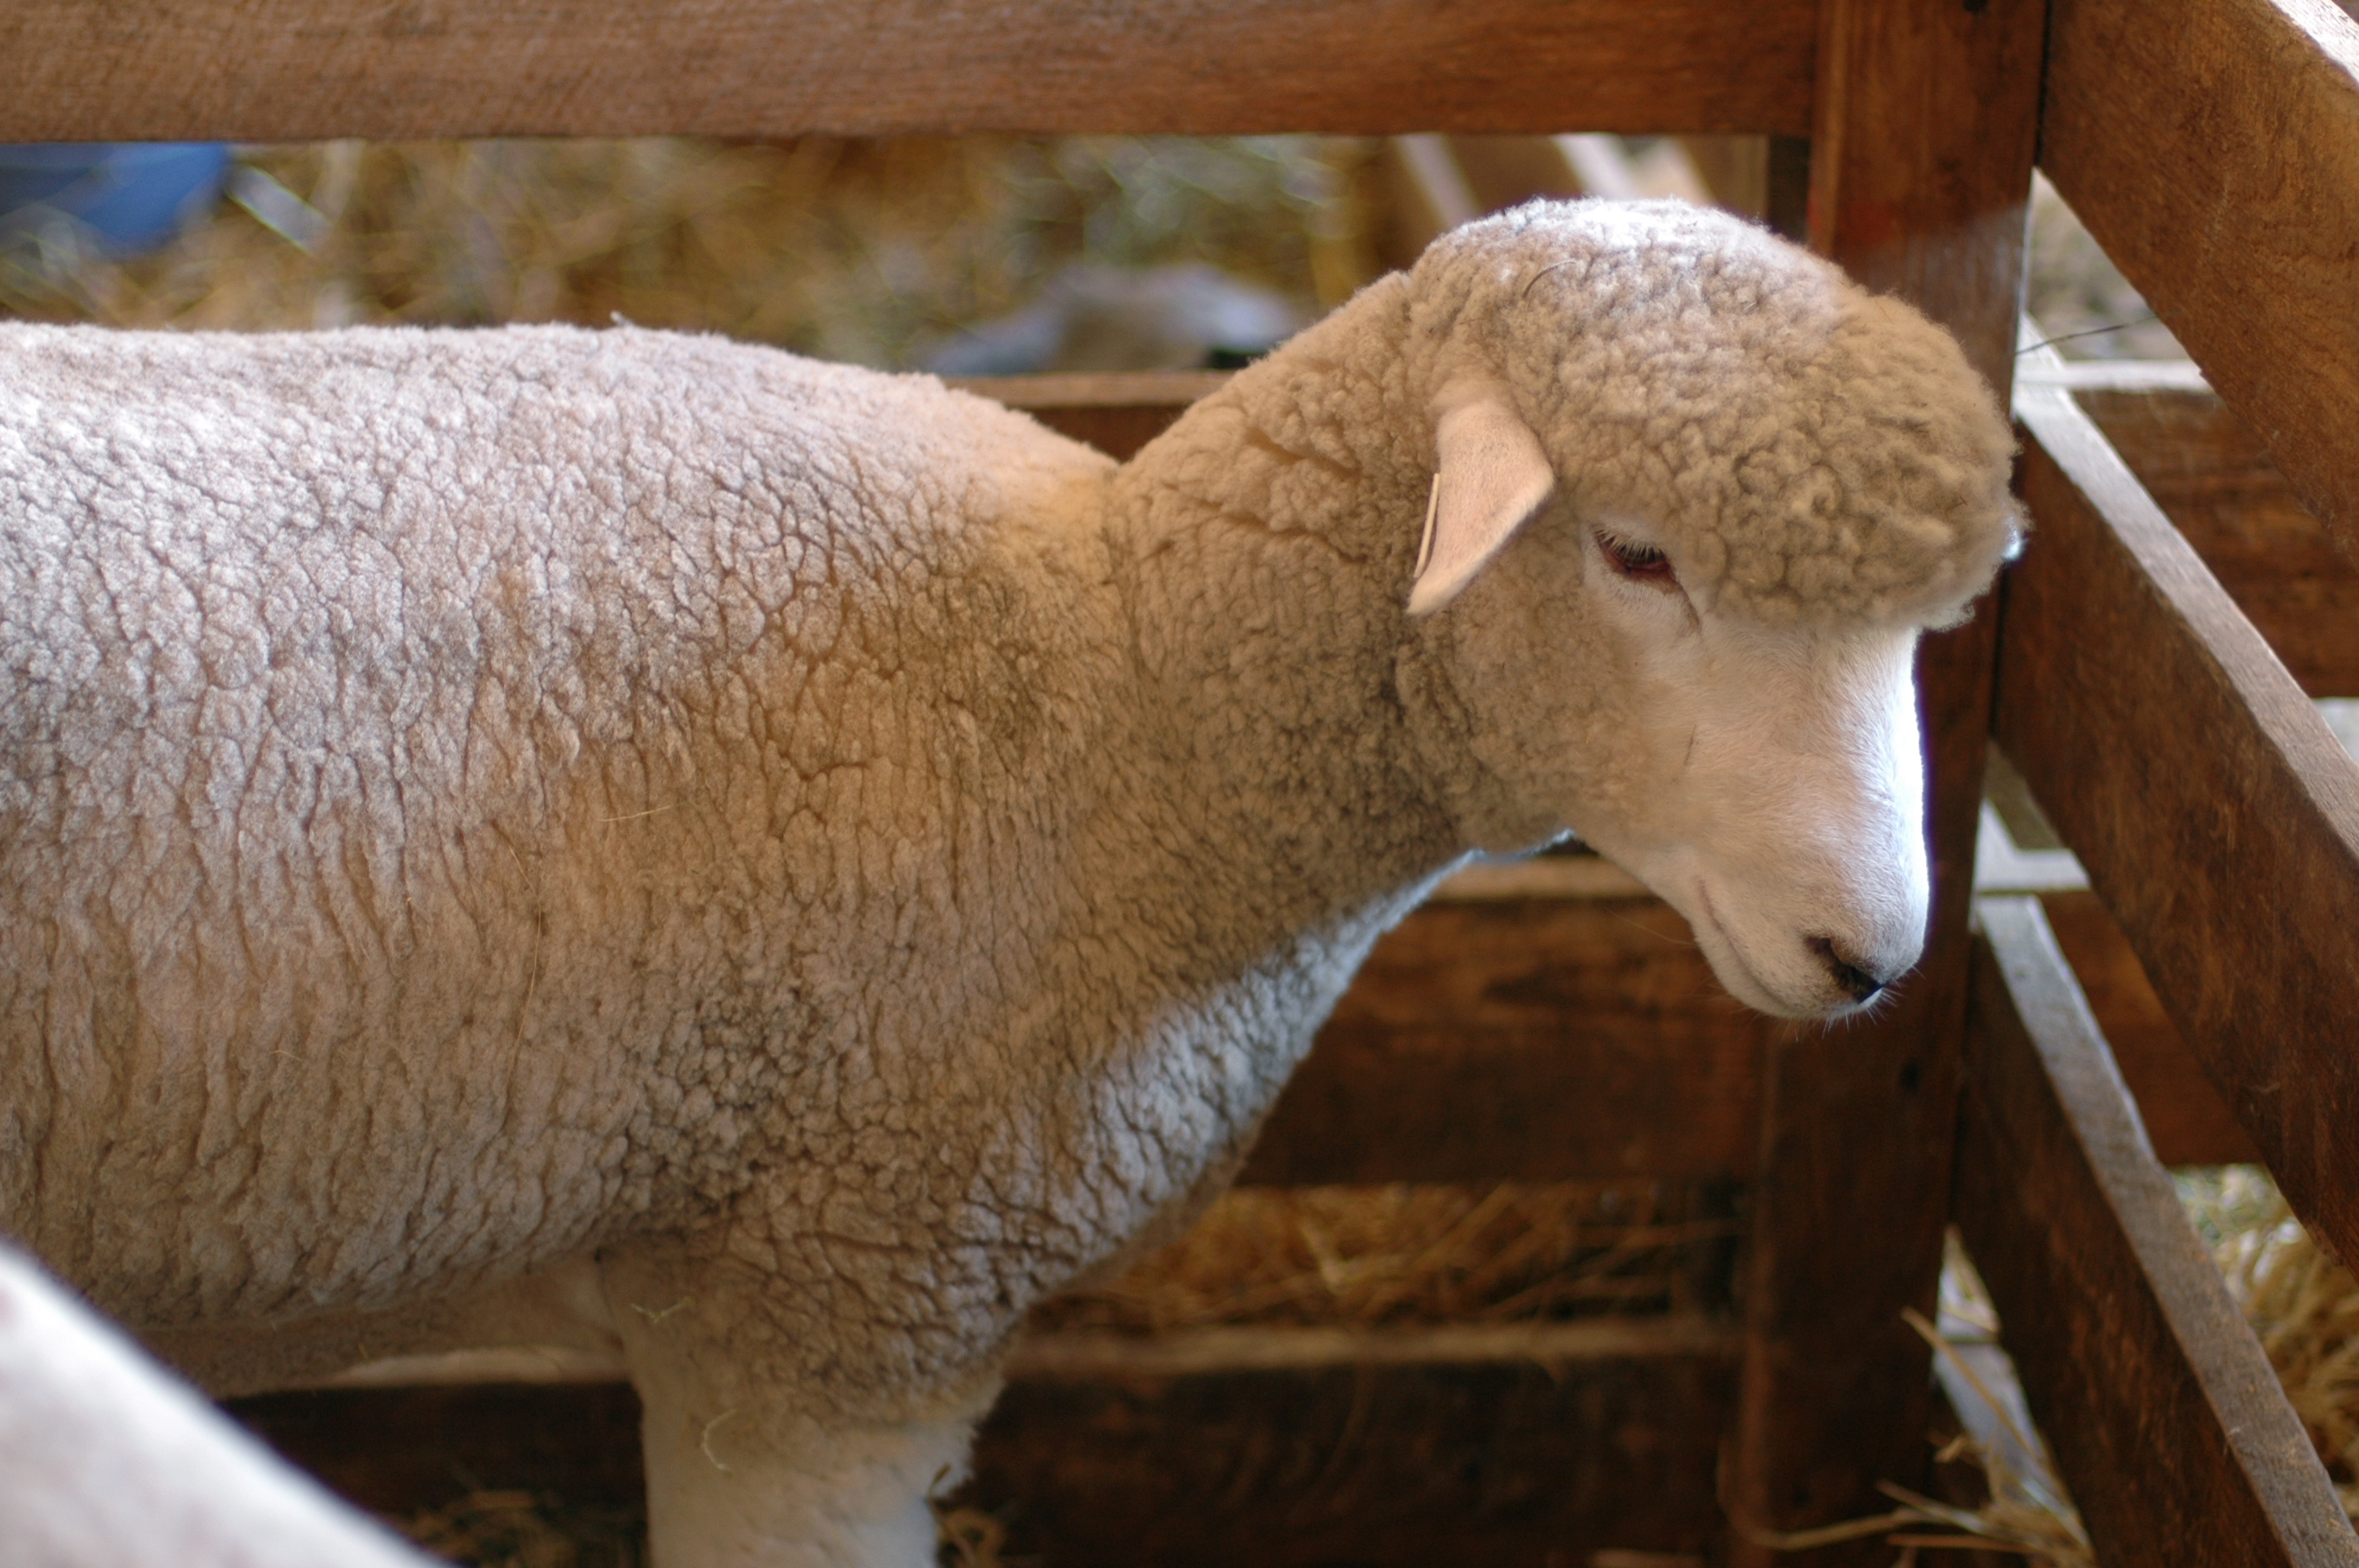 How do you raise healthy sheep?